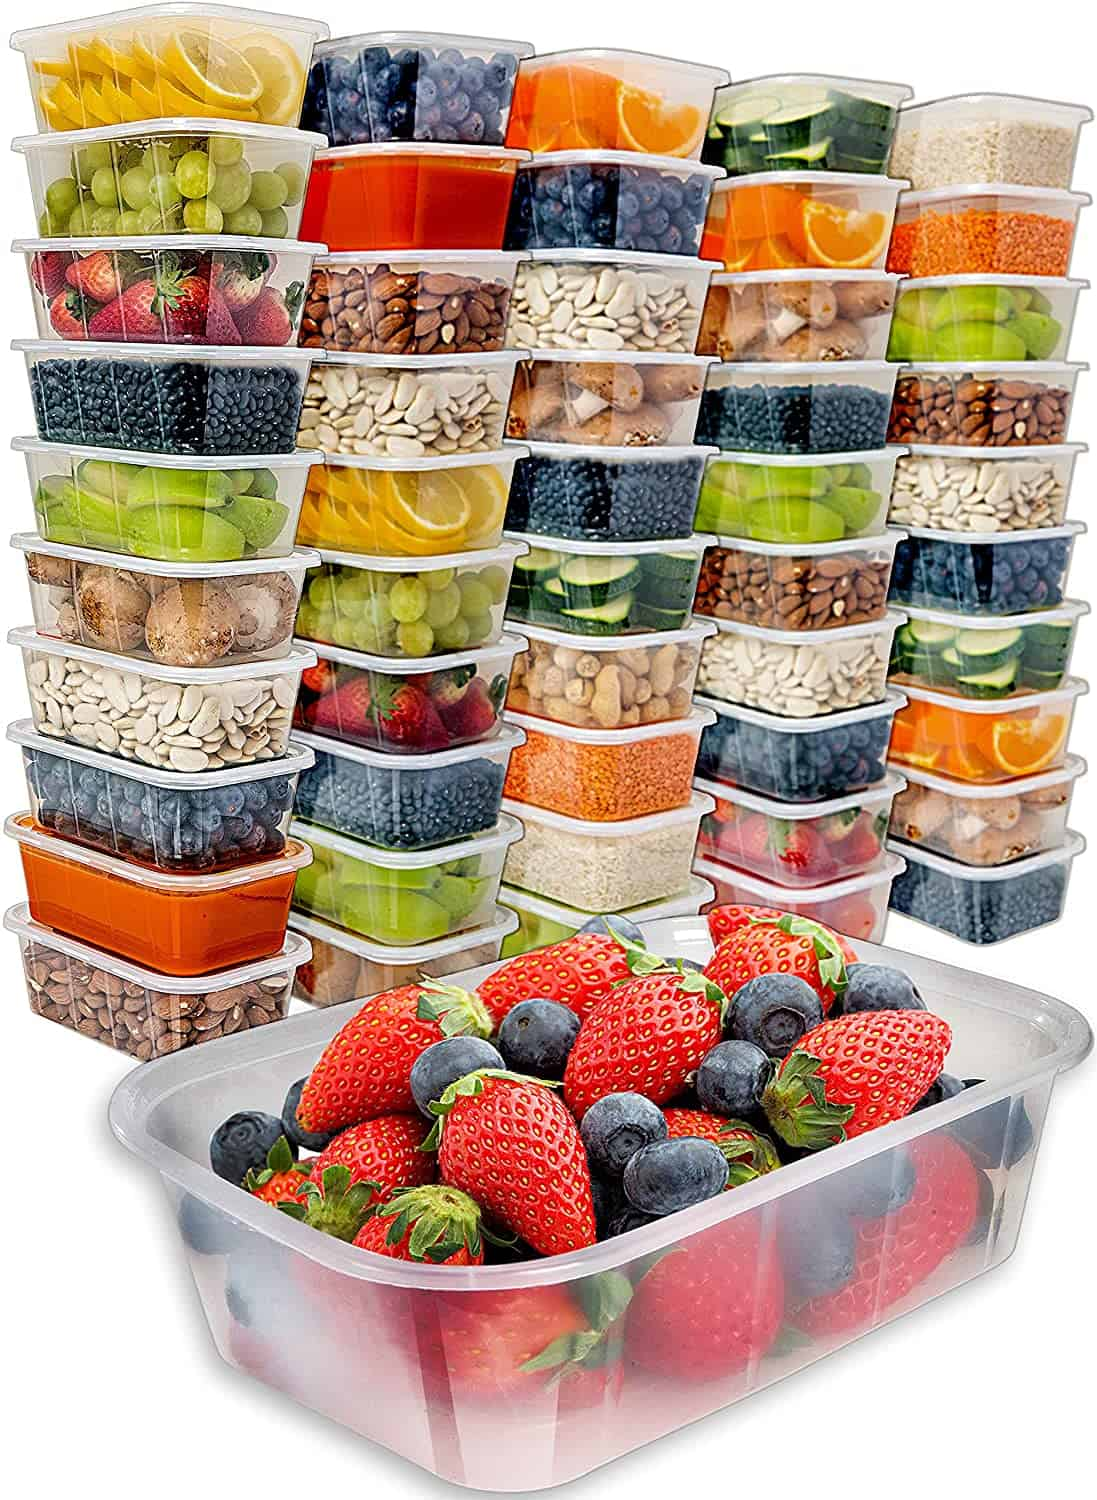 Food Storage Containers with Lids (50 Pack, 25 Ounce) - Food Containers Meal Prep Plastic Containers with Lids Food Prep Containers Deli Containers with Lids Freezer Containers